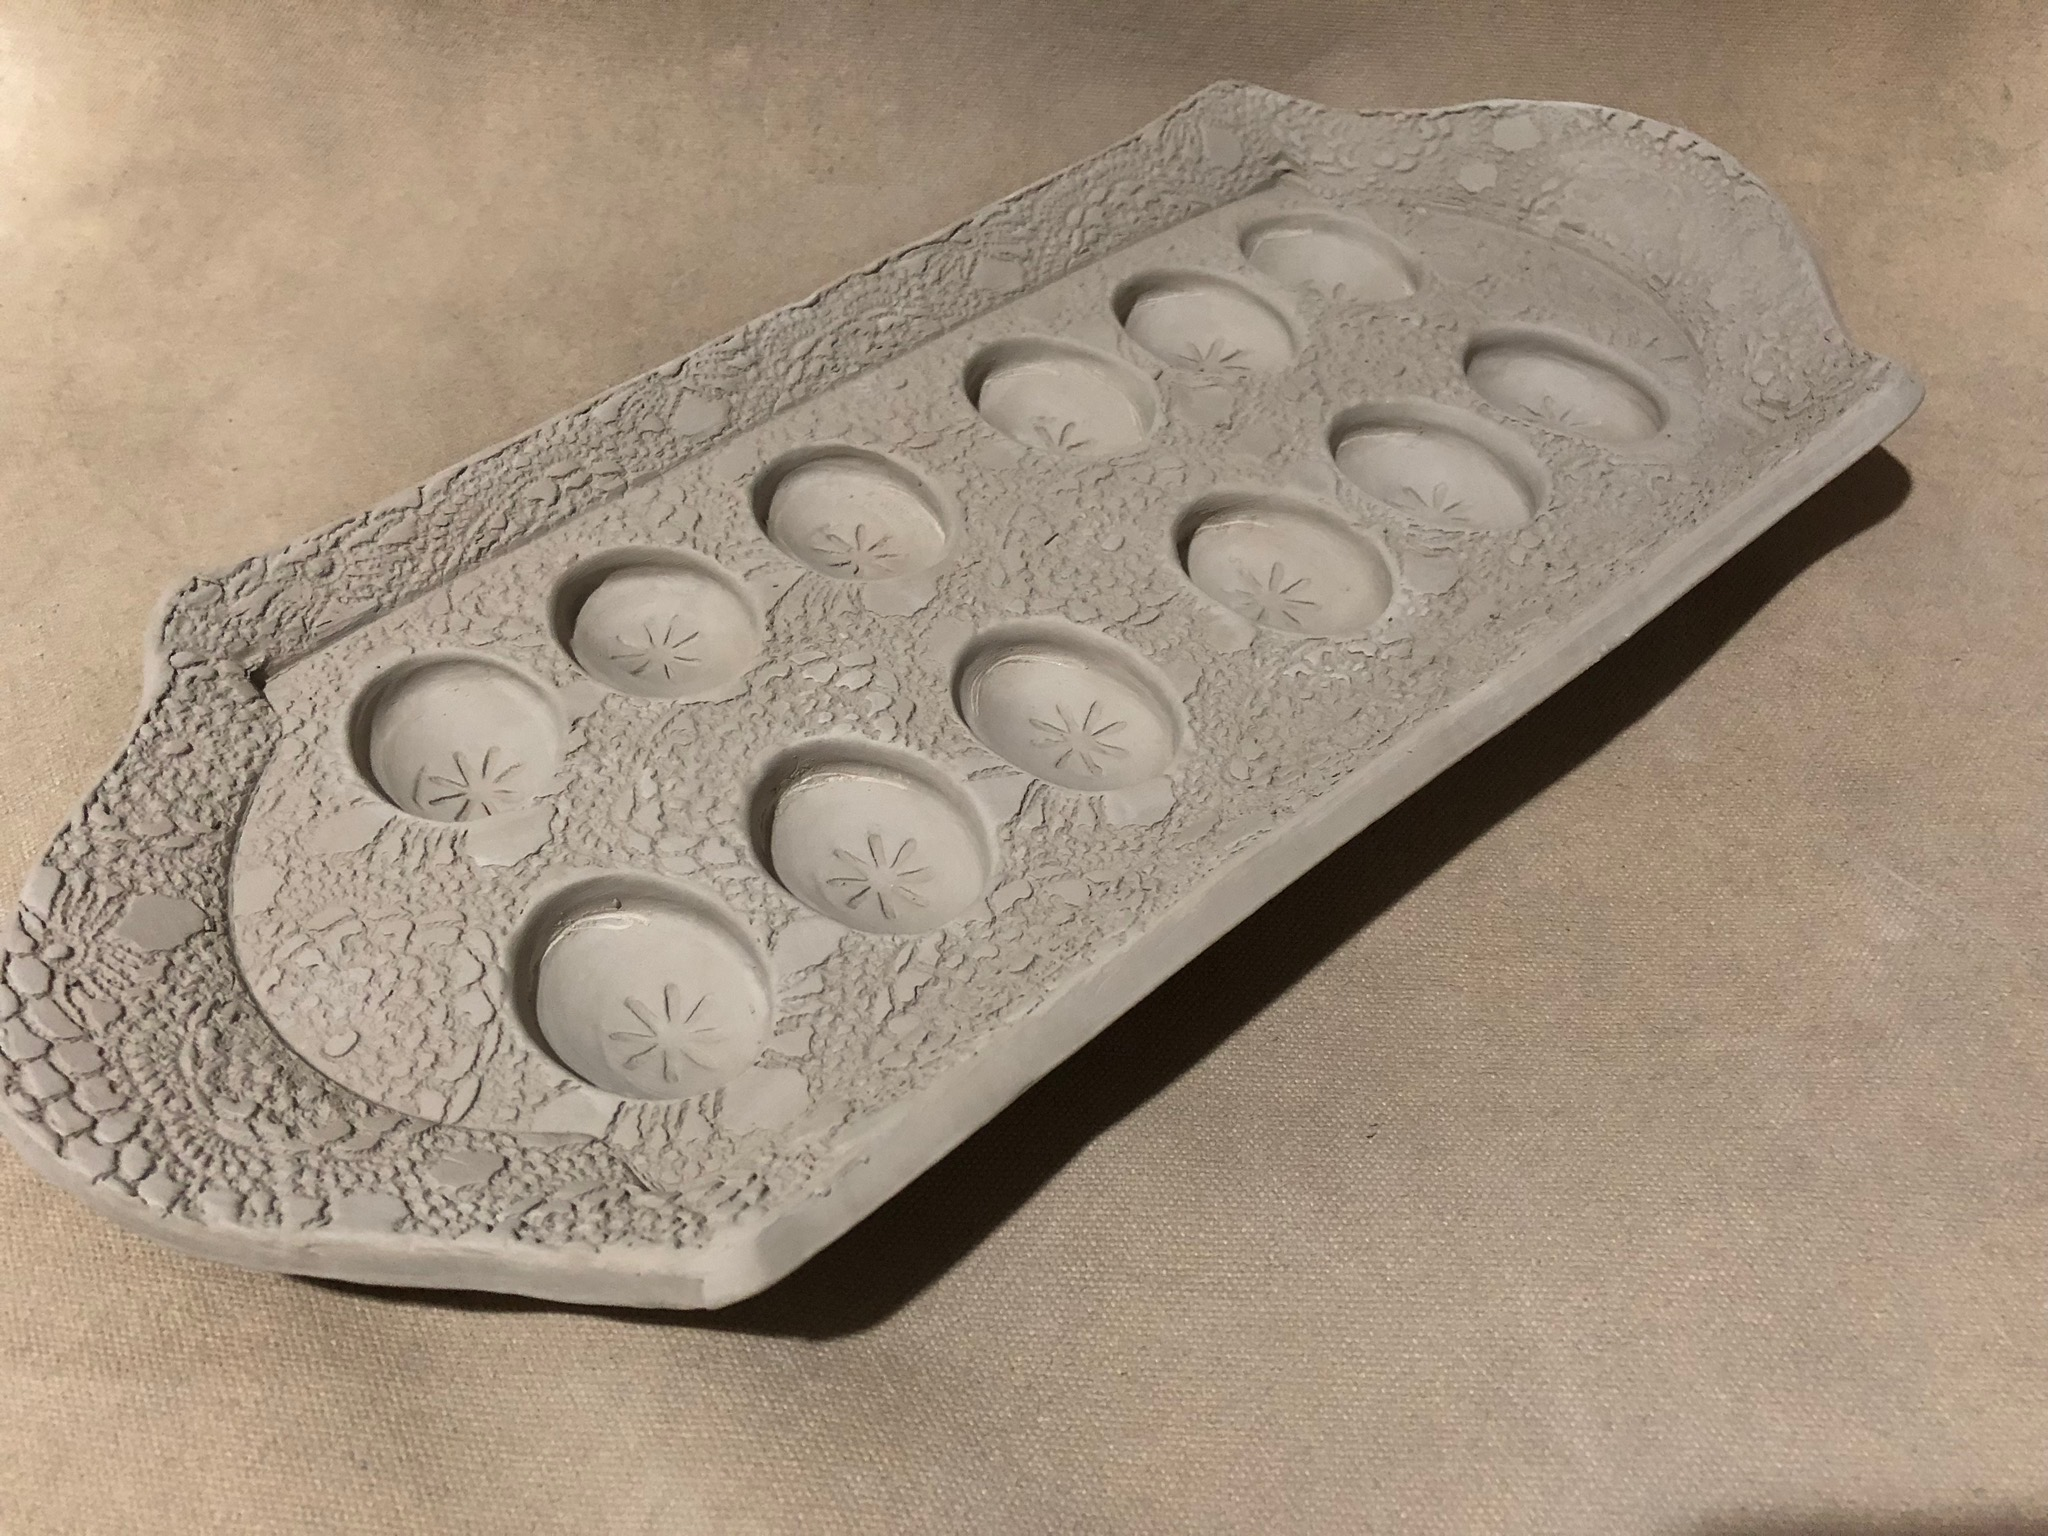 Once I get back to clay, I'll be working on this new egg tray design I created for a special customer. Is it an item you'd like to use too? Click on the photo to let me know or even share your favorite deviled egg recipe!